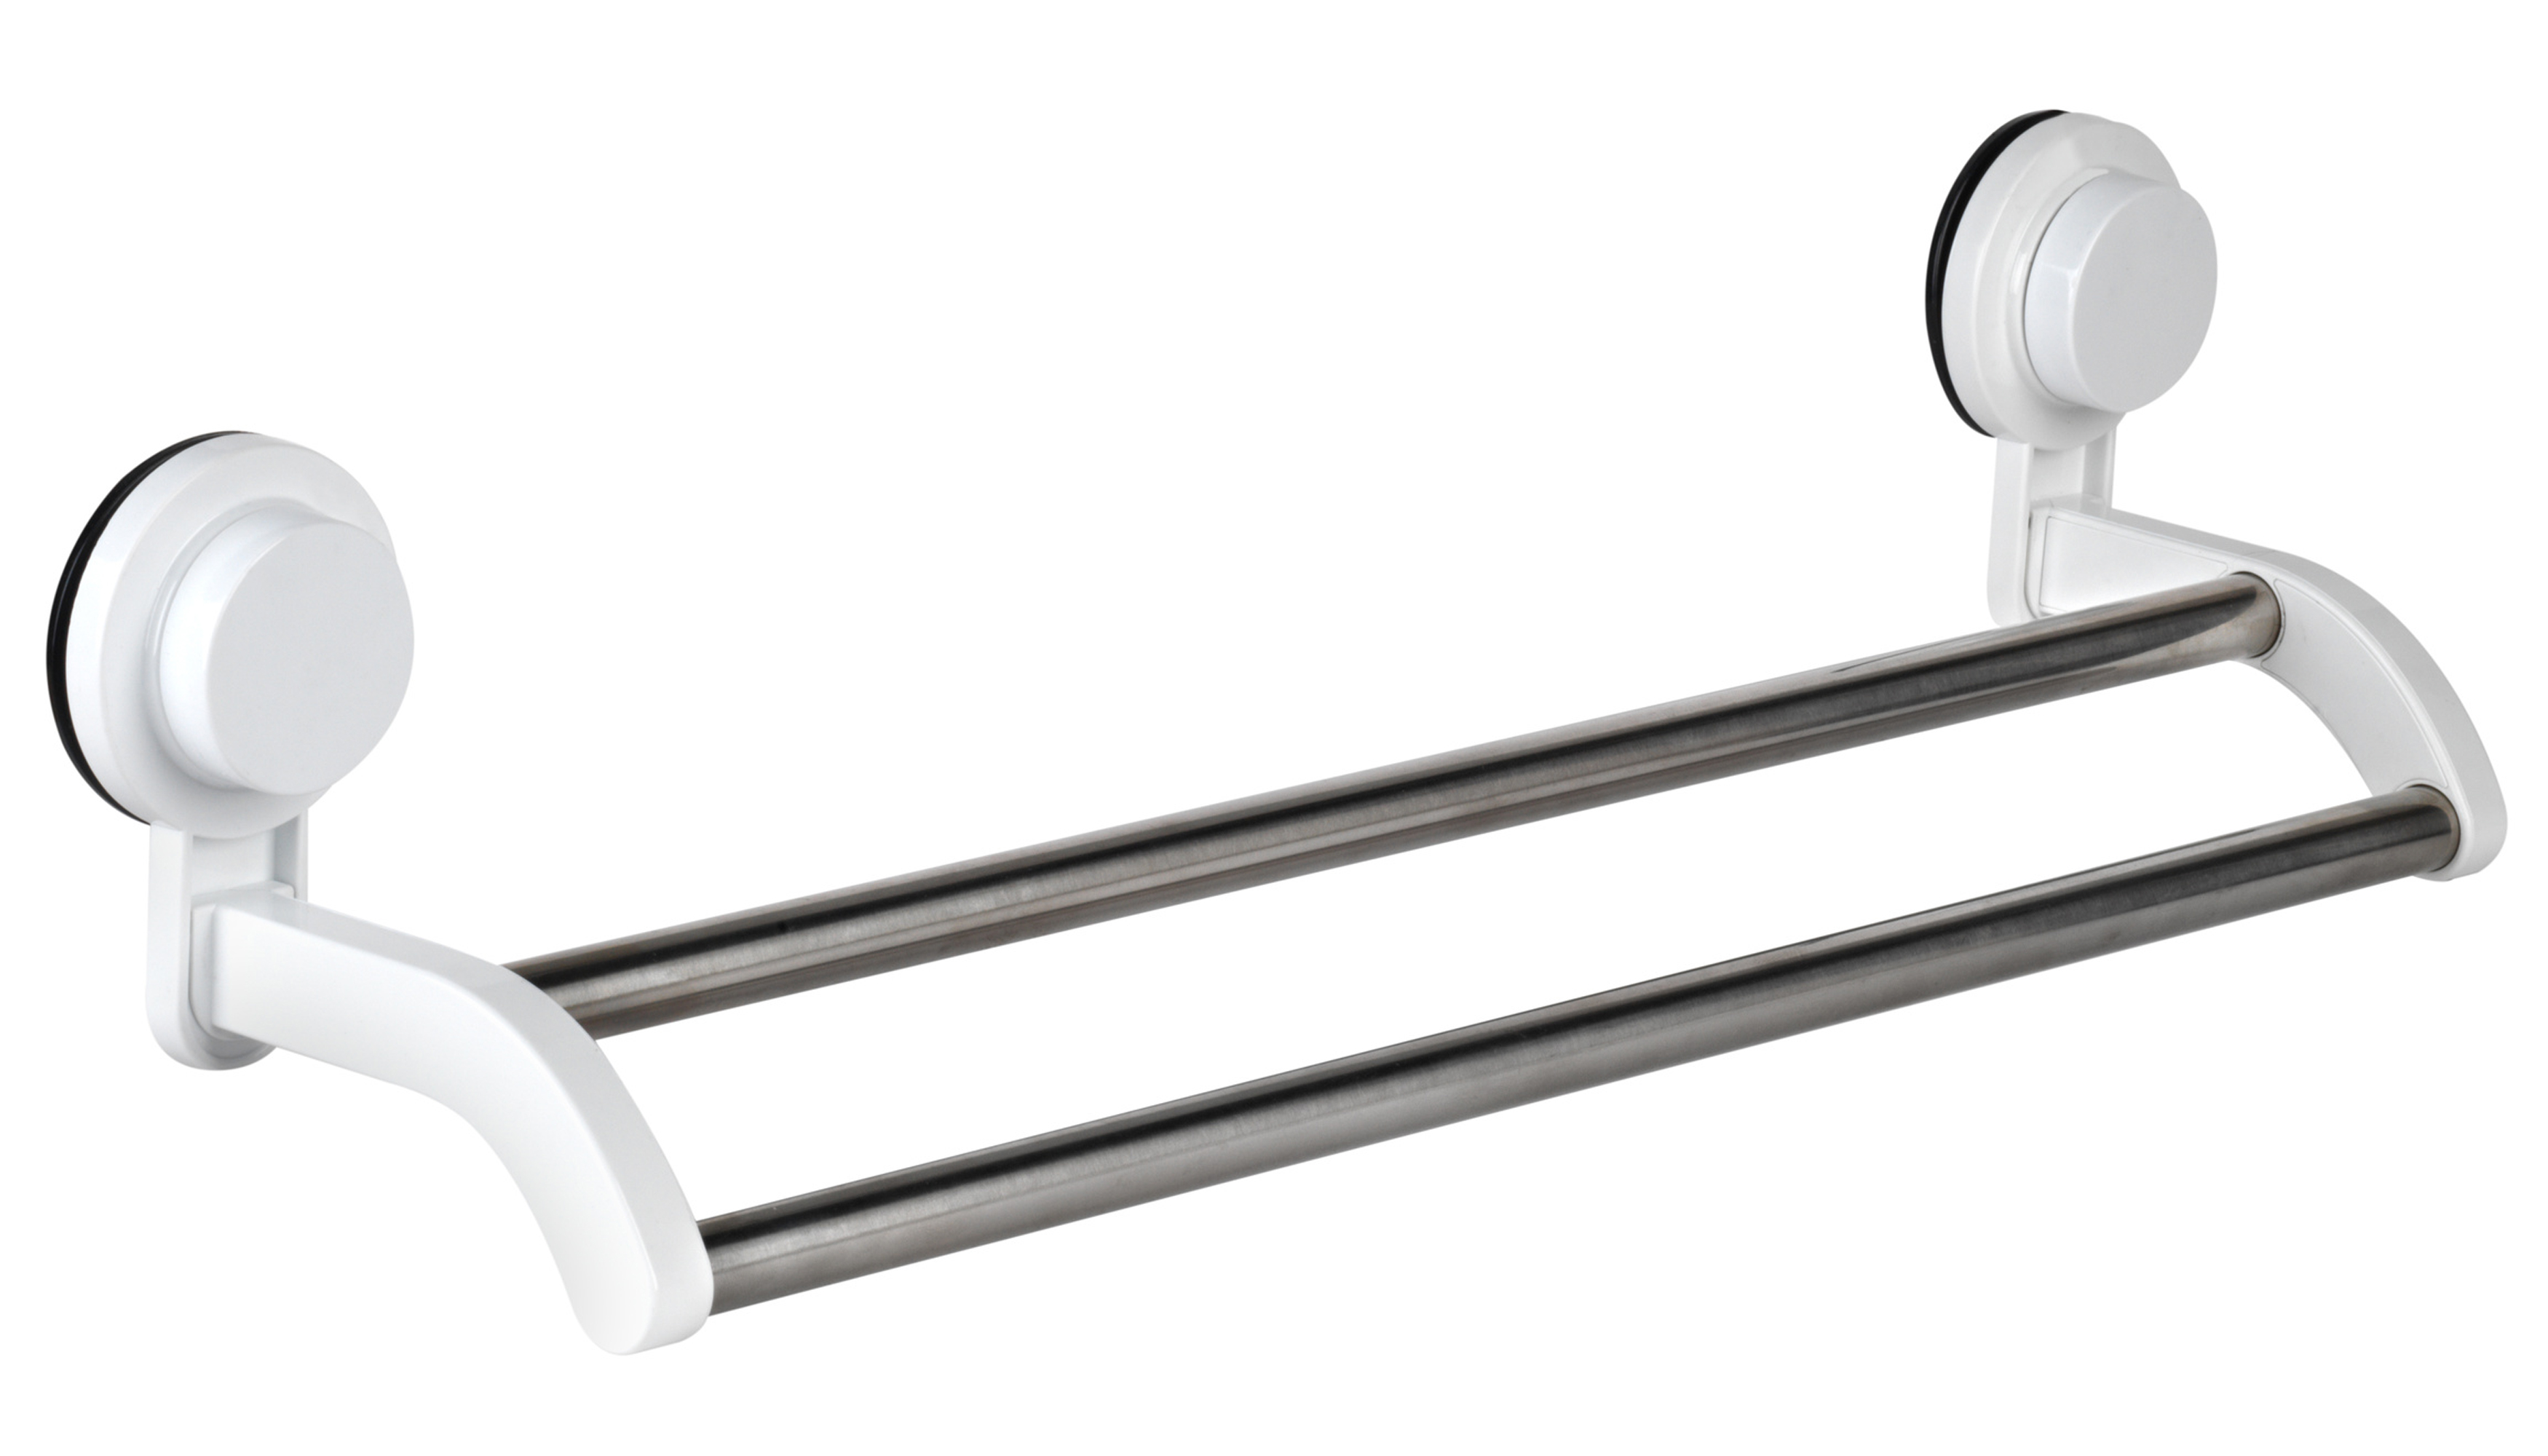 Beldray La046512 Suction Double Towel Rail Rack Bathroom Accessories No1brands4you